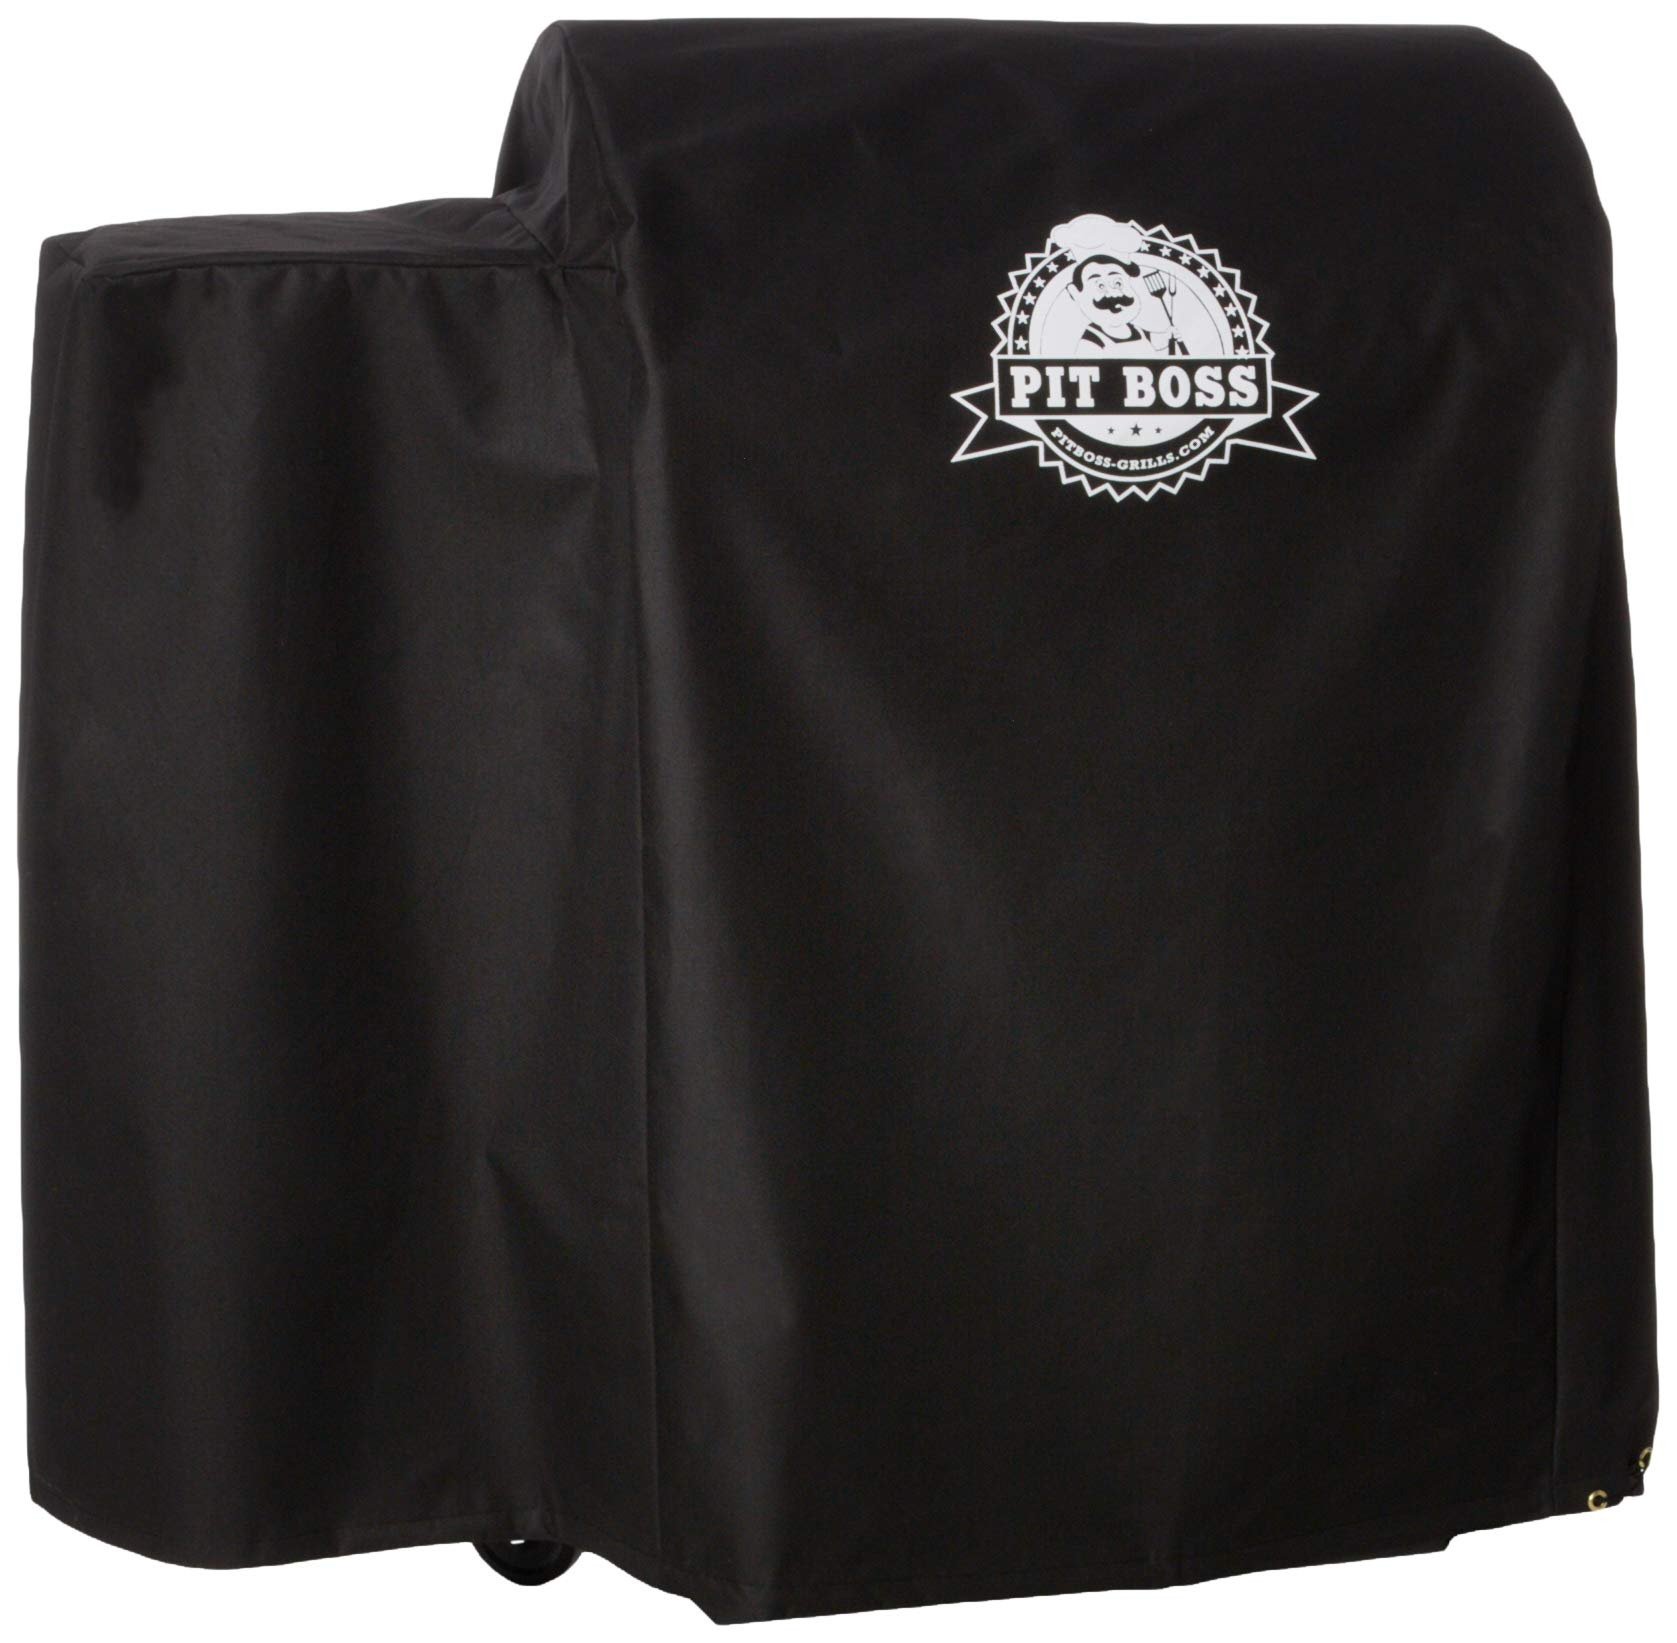 Pit Boss 73700 Grill Cover for 700FB Wood Pellet Grills by Pit Boss Grills